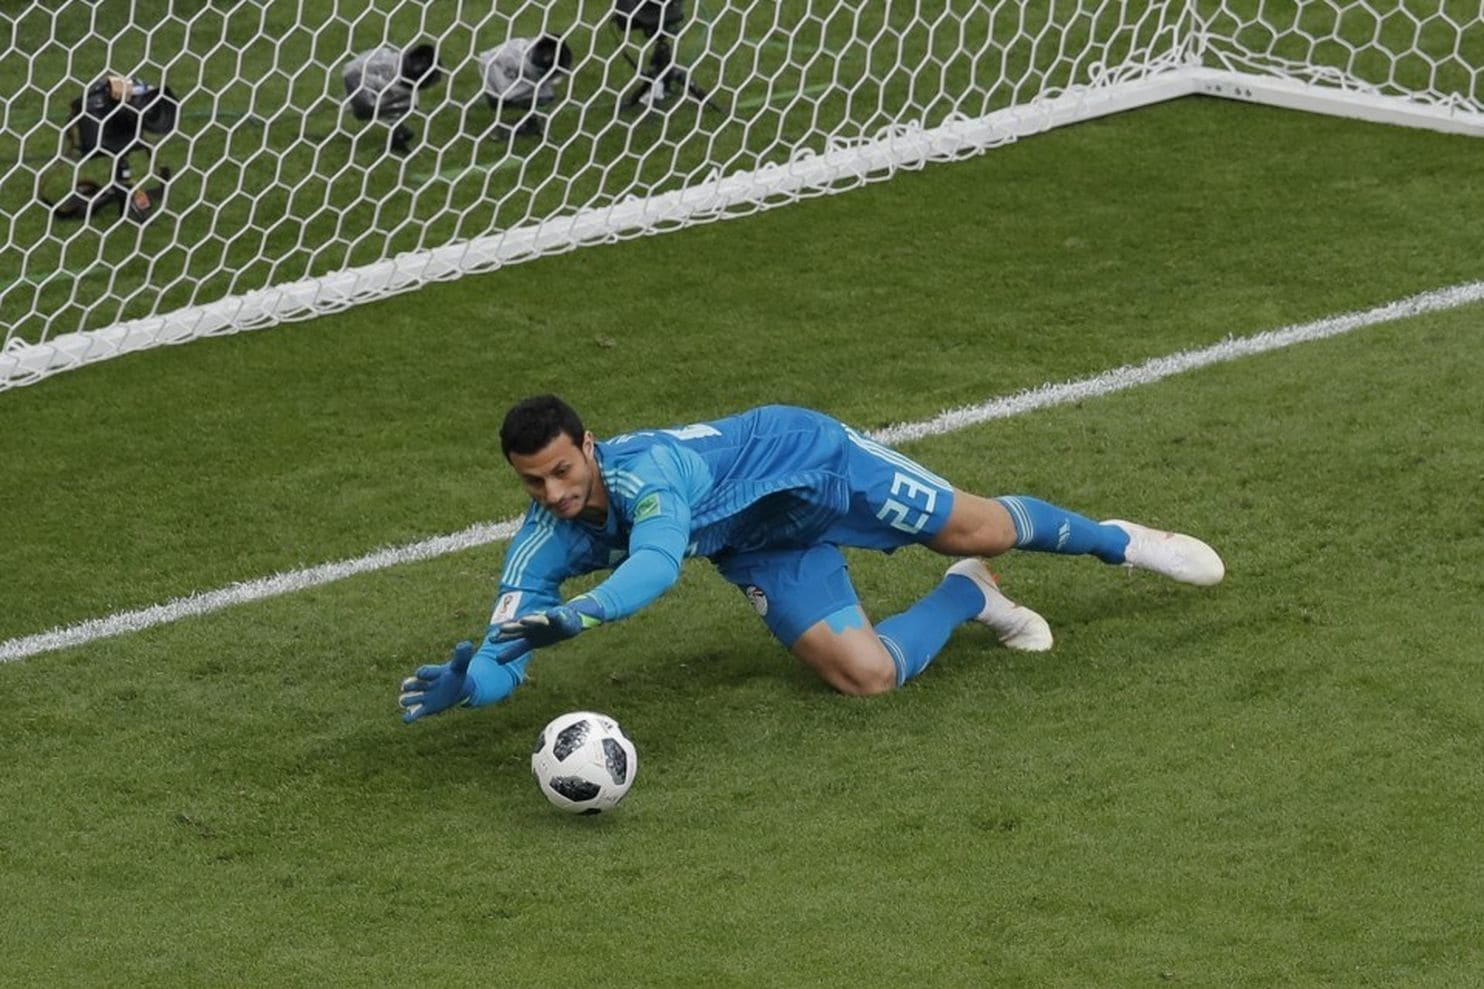 Egypt Goalkeeper Declines Budweiser-Sponsored 'Man of the Match' Trophy at World Cup